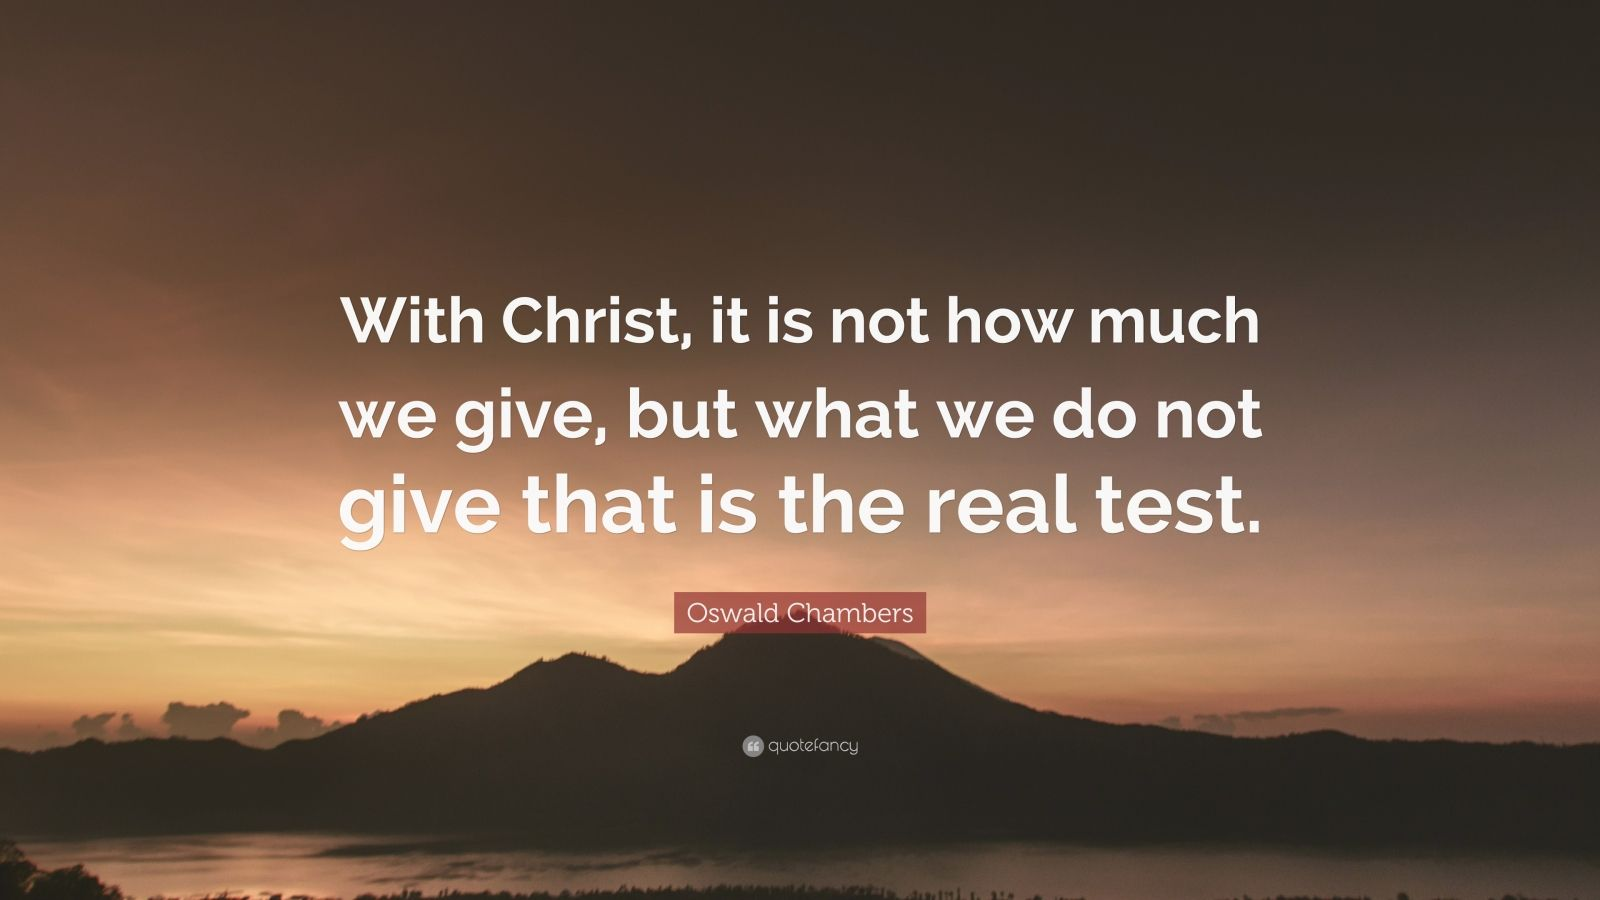 """Oswald Chambers Quote: """"With Christ, it is not how much we give, but what we do not give that is the real test."""""""